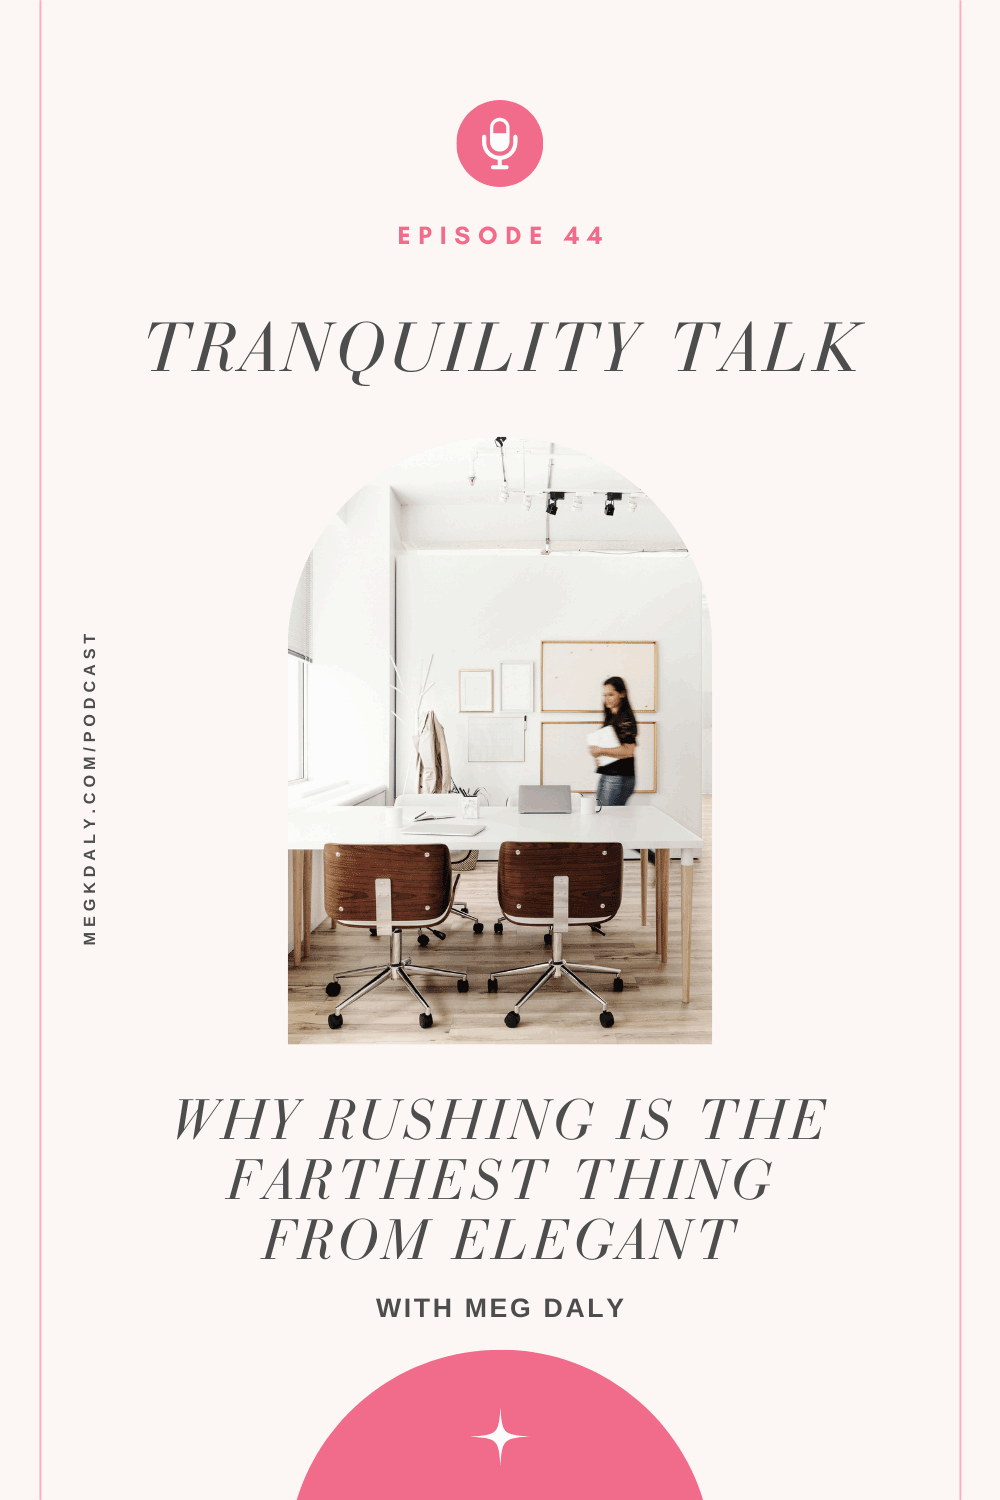 Tranquility Talk: Why Rushing Is The Farthest Thing From Elegant